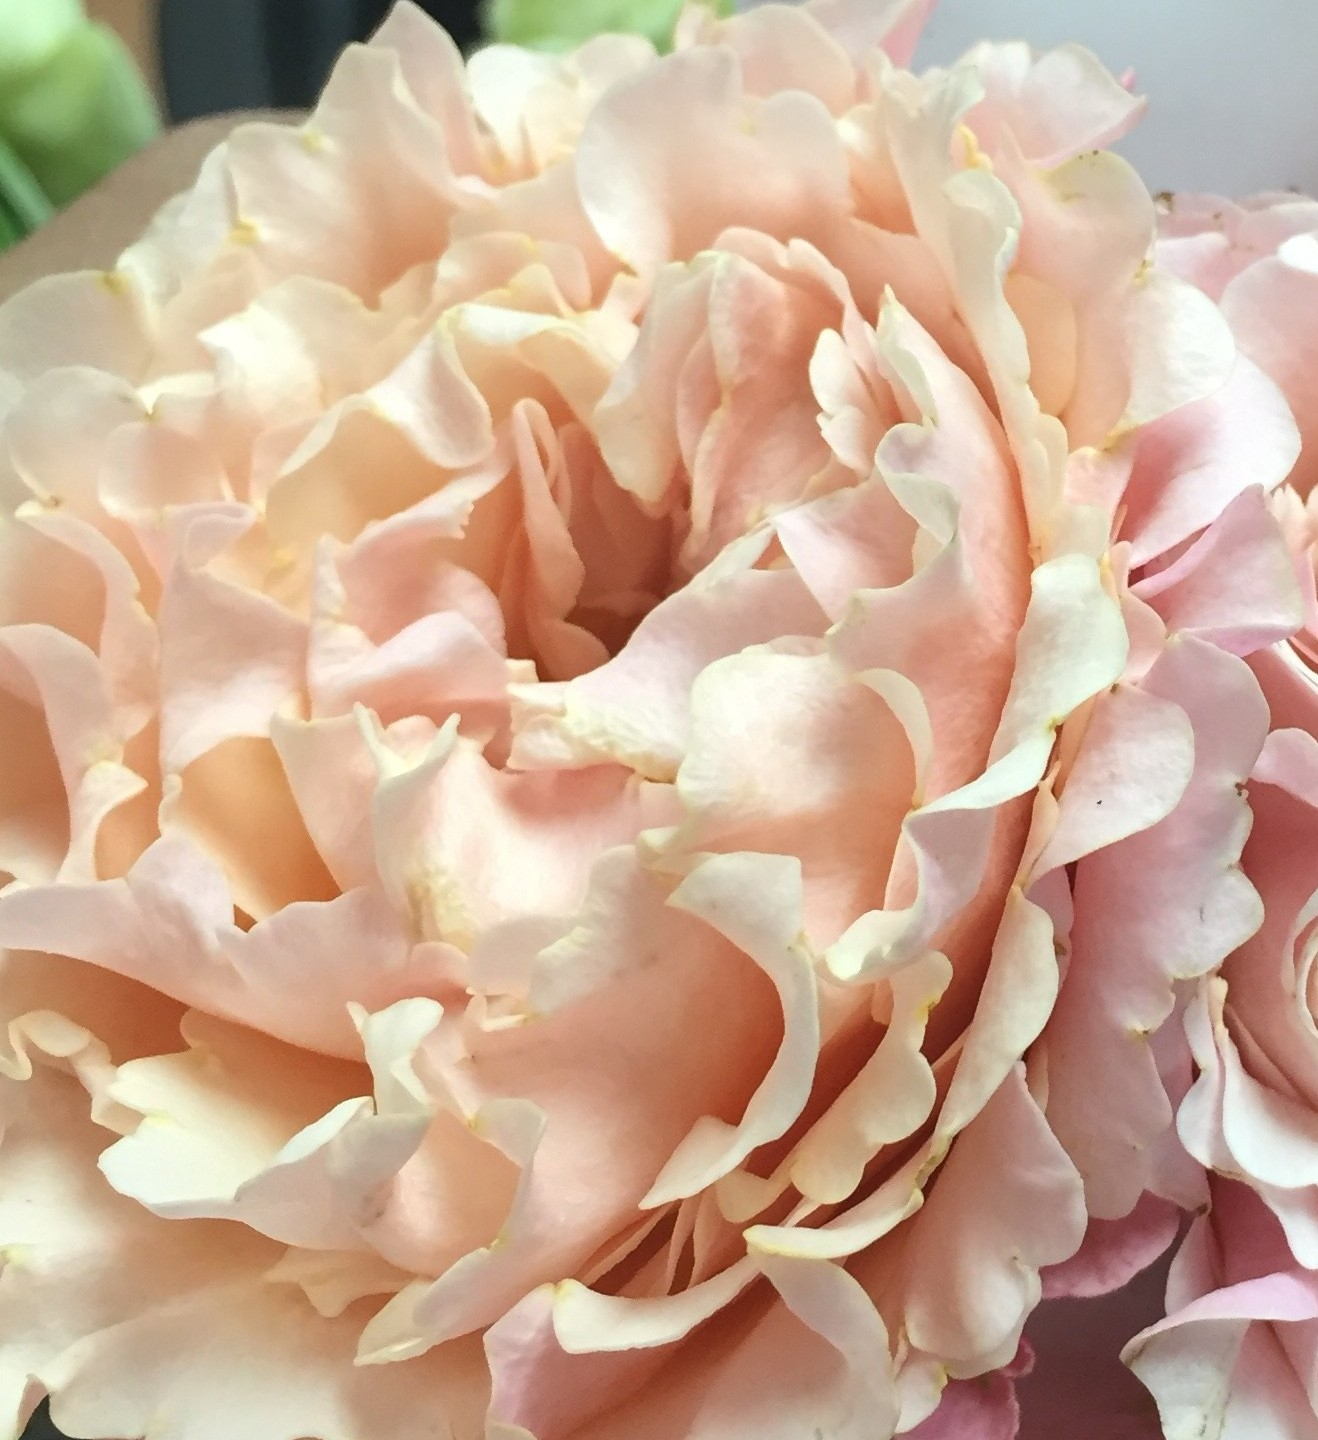 Peach Garden Rose mayras peach – allure farms